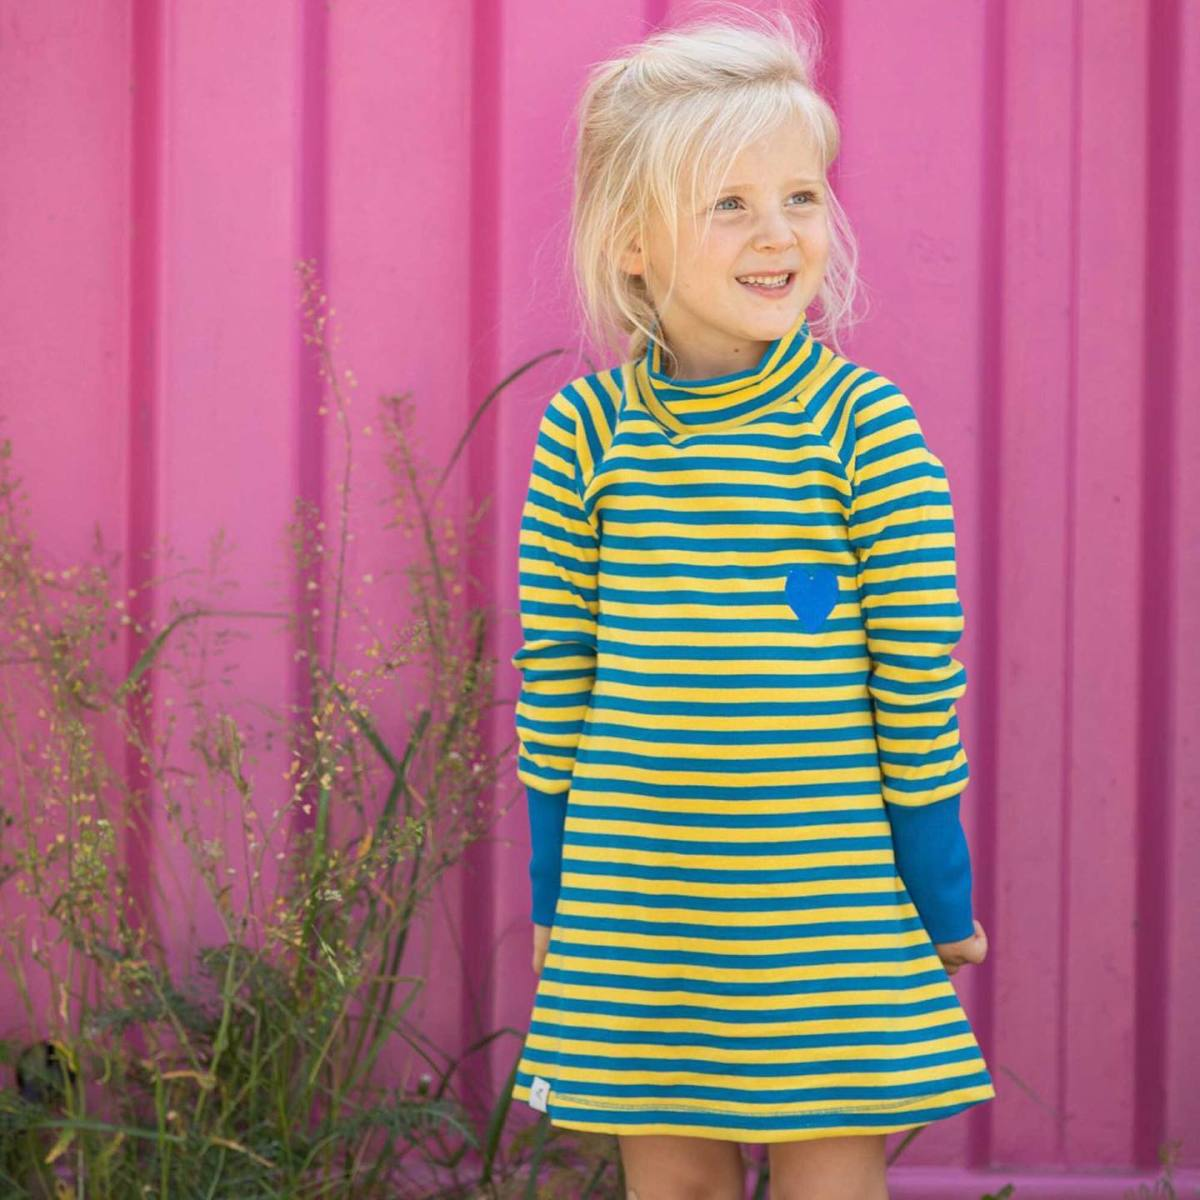 Fun Trends for Kids Ittikid's Saturated Colors